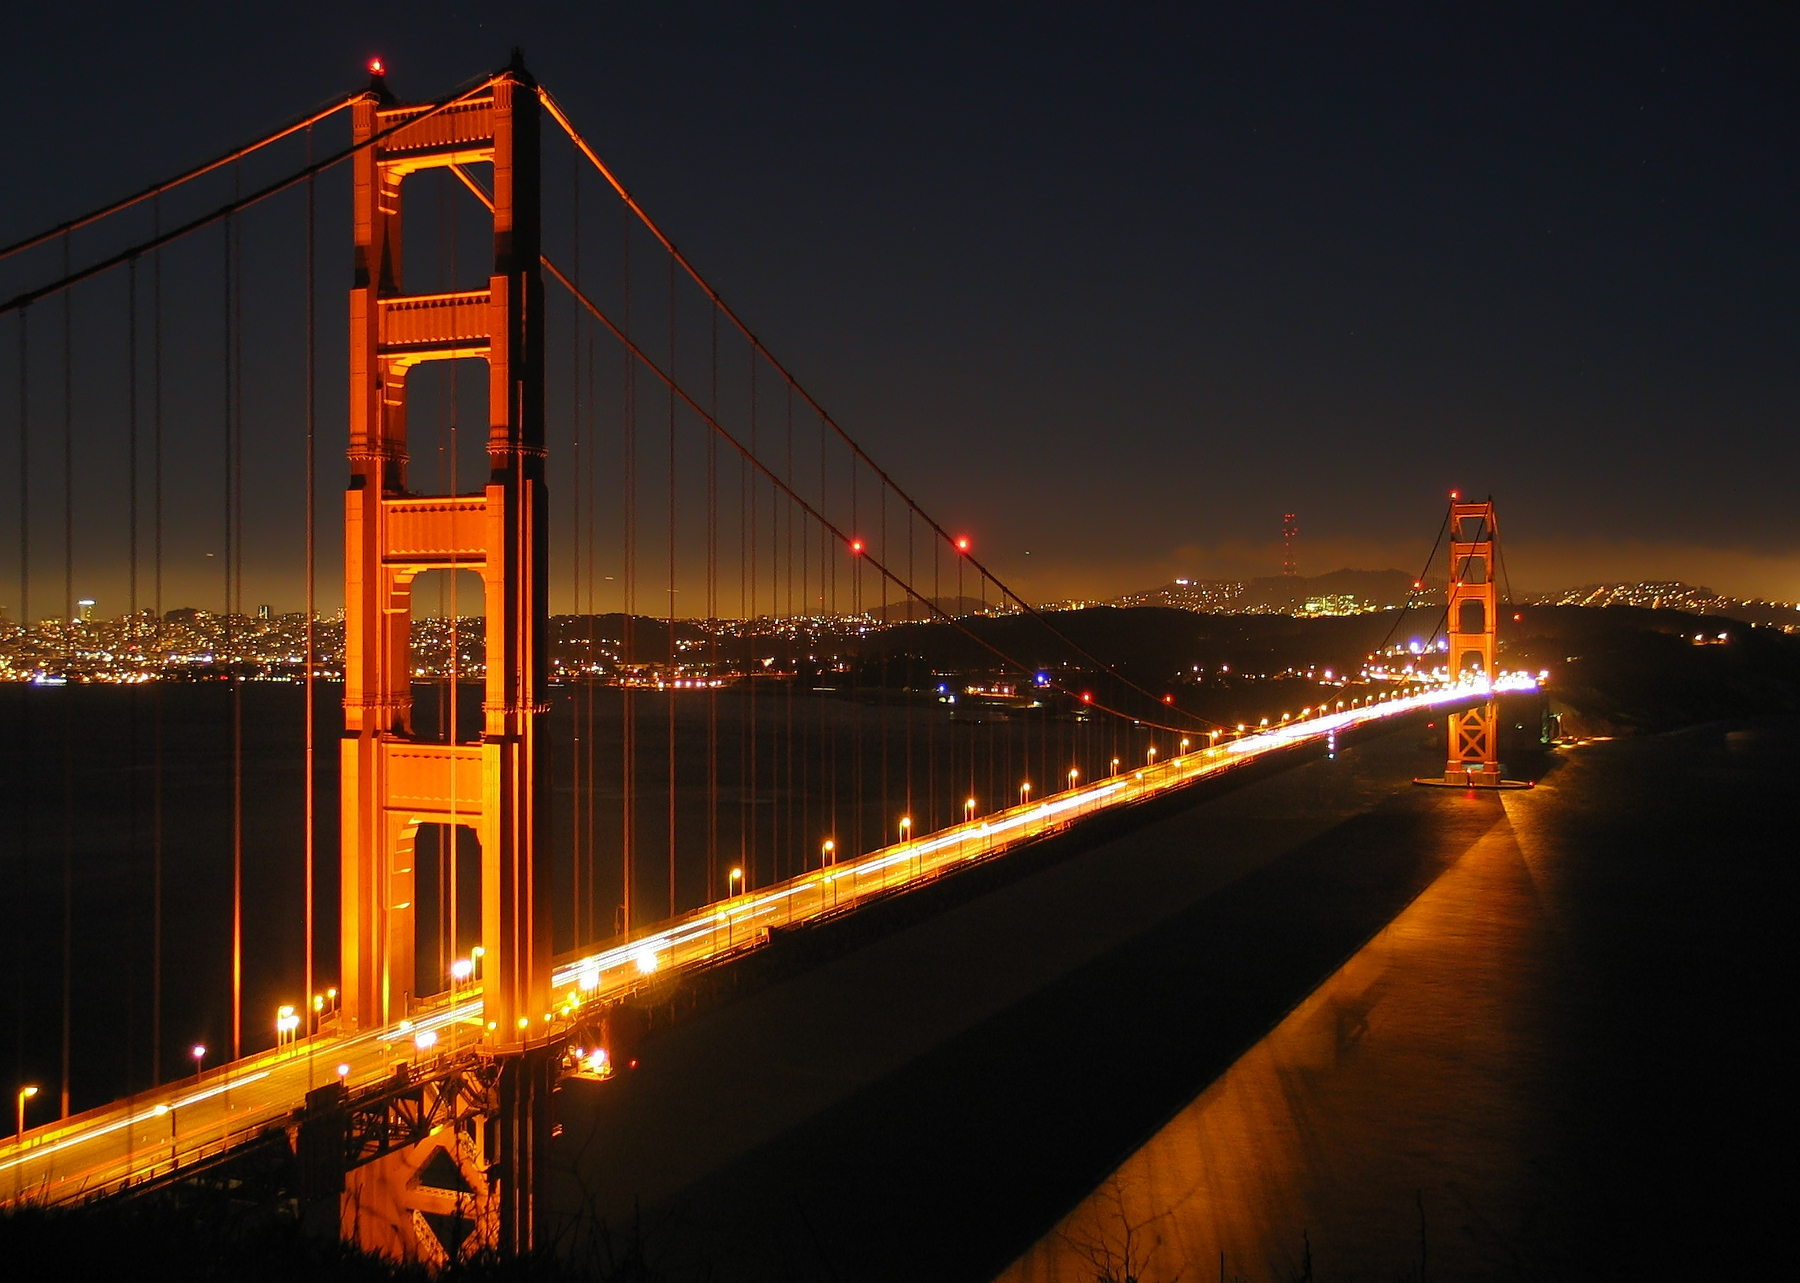 """The Golden Gate Bridge by night, with part of downtown San Francisco.   """"Ggb by night"""" by Daniel Schwen. Licensed under CC BY-SA 3.0 via Wikimedia Commons."""